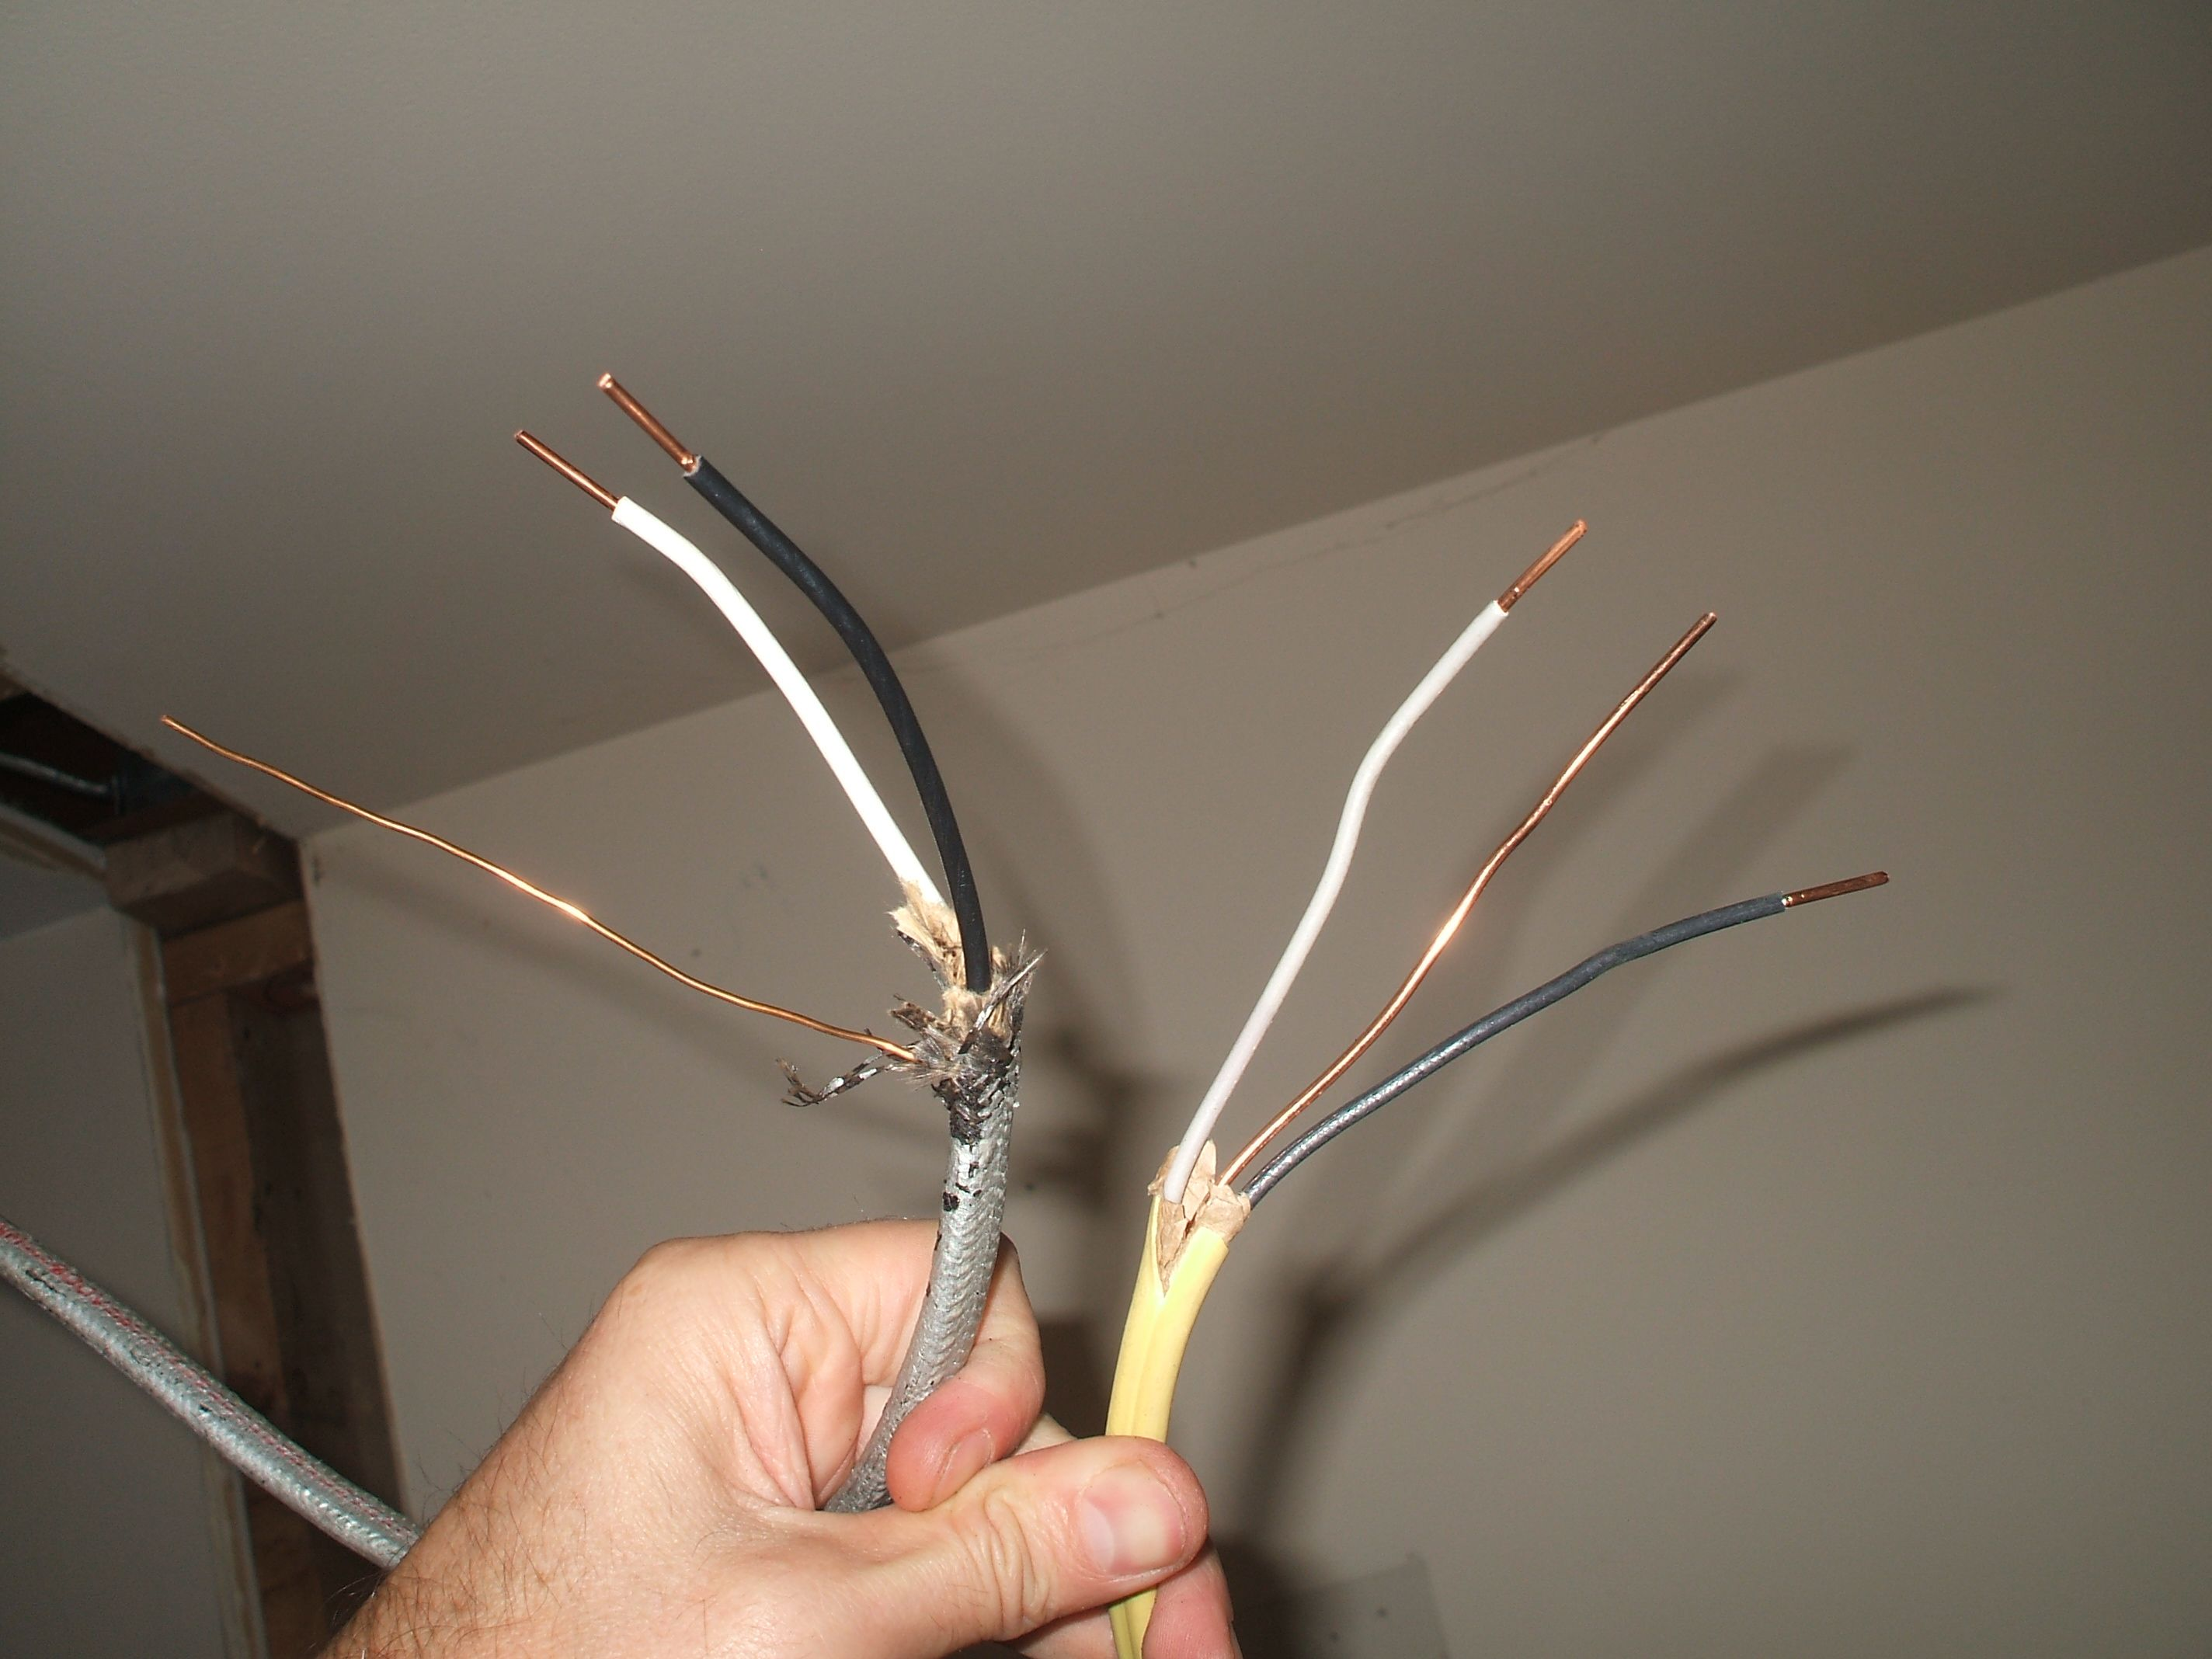 How To Splice Electrical Wire Old House Wiring Uk